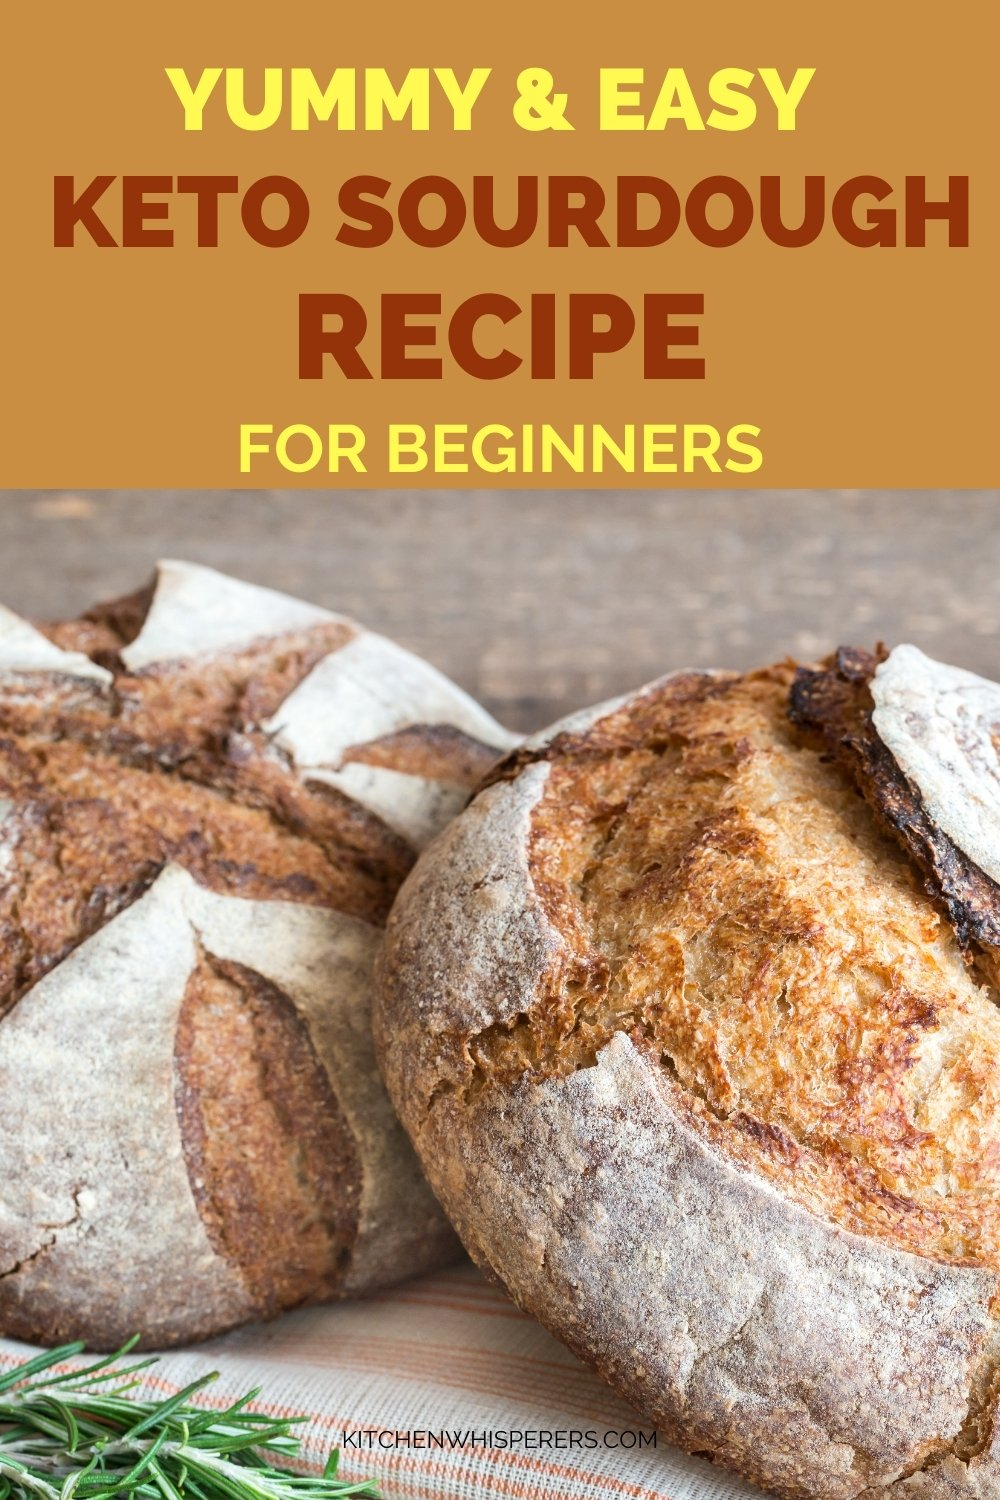 Easy Keto Sourdough Bread